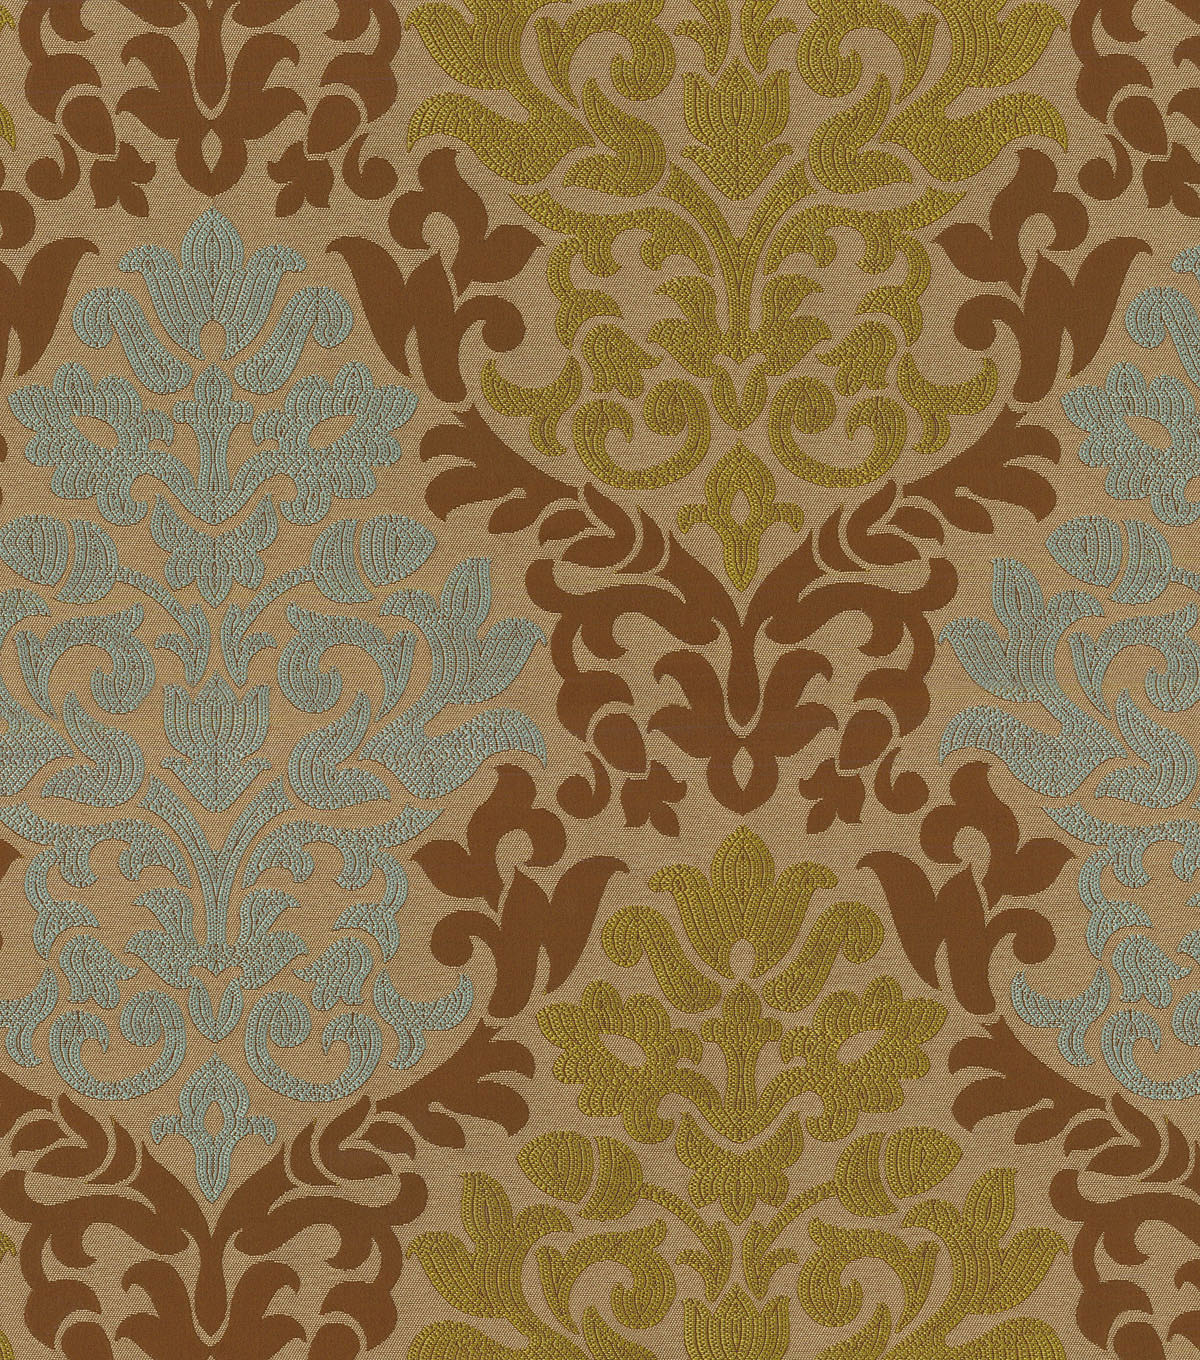 Waverly Multi-Purpose Decor Fabric 56\u0022-Romantic Rhyme/Chestnut